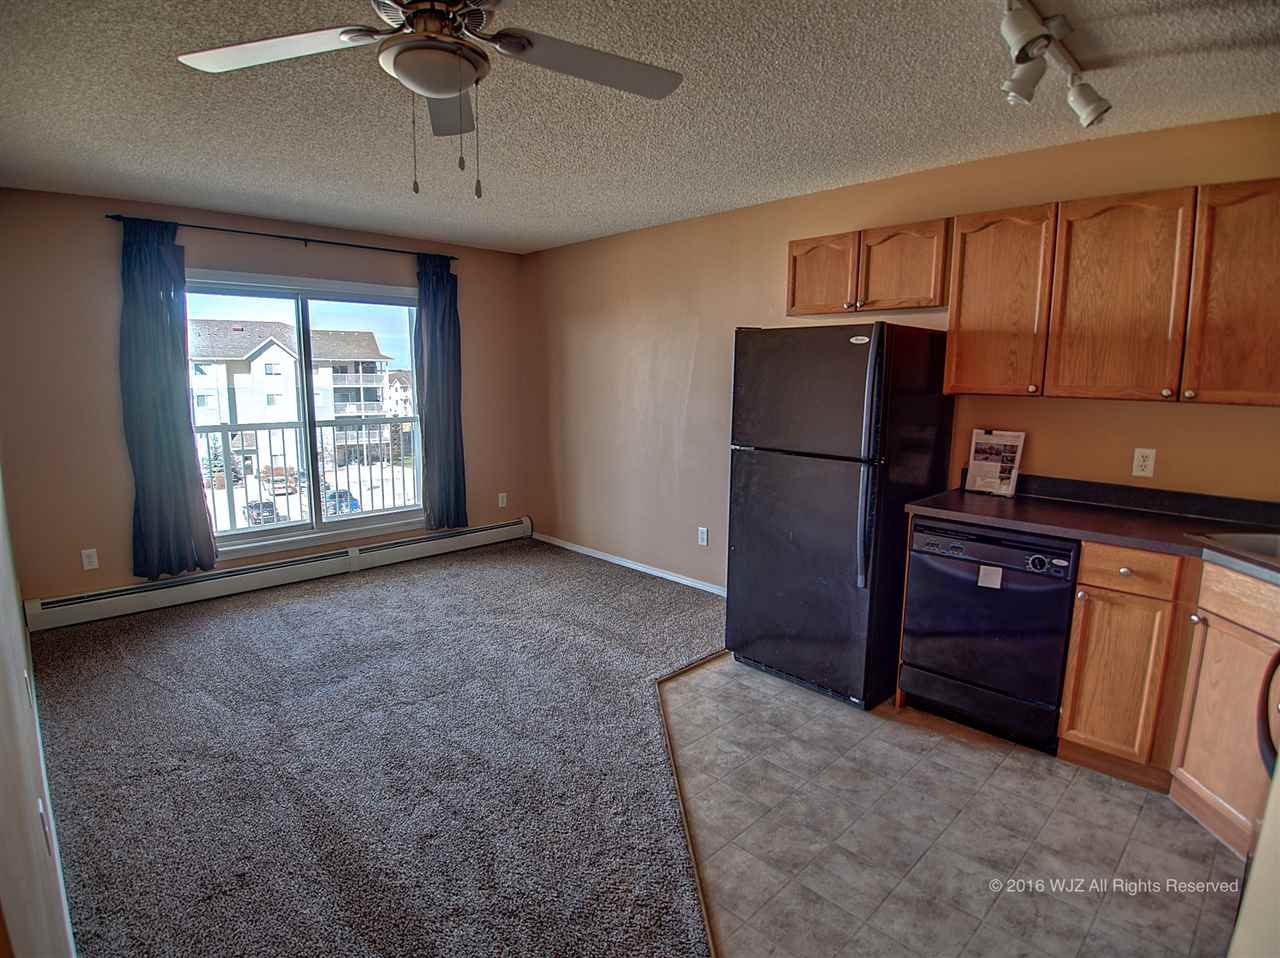 Photo 11: 423 70 woodsmere Close: Fort Saskatchewan Condo for sale : MLS(r) # E4031999